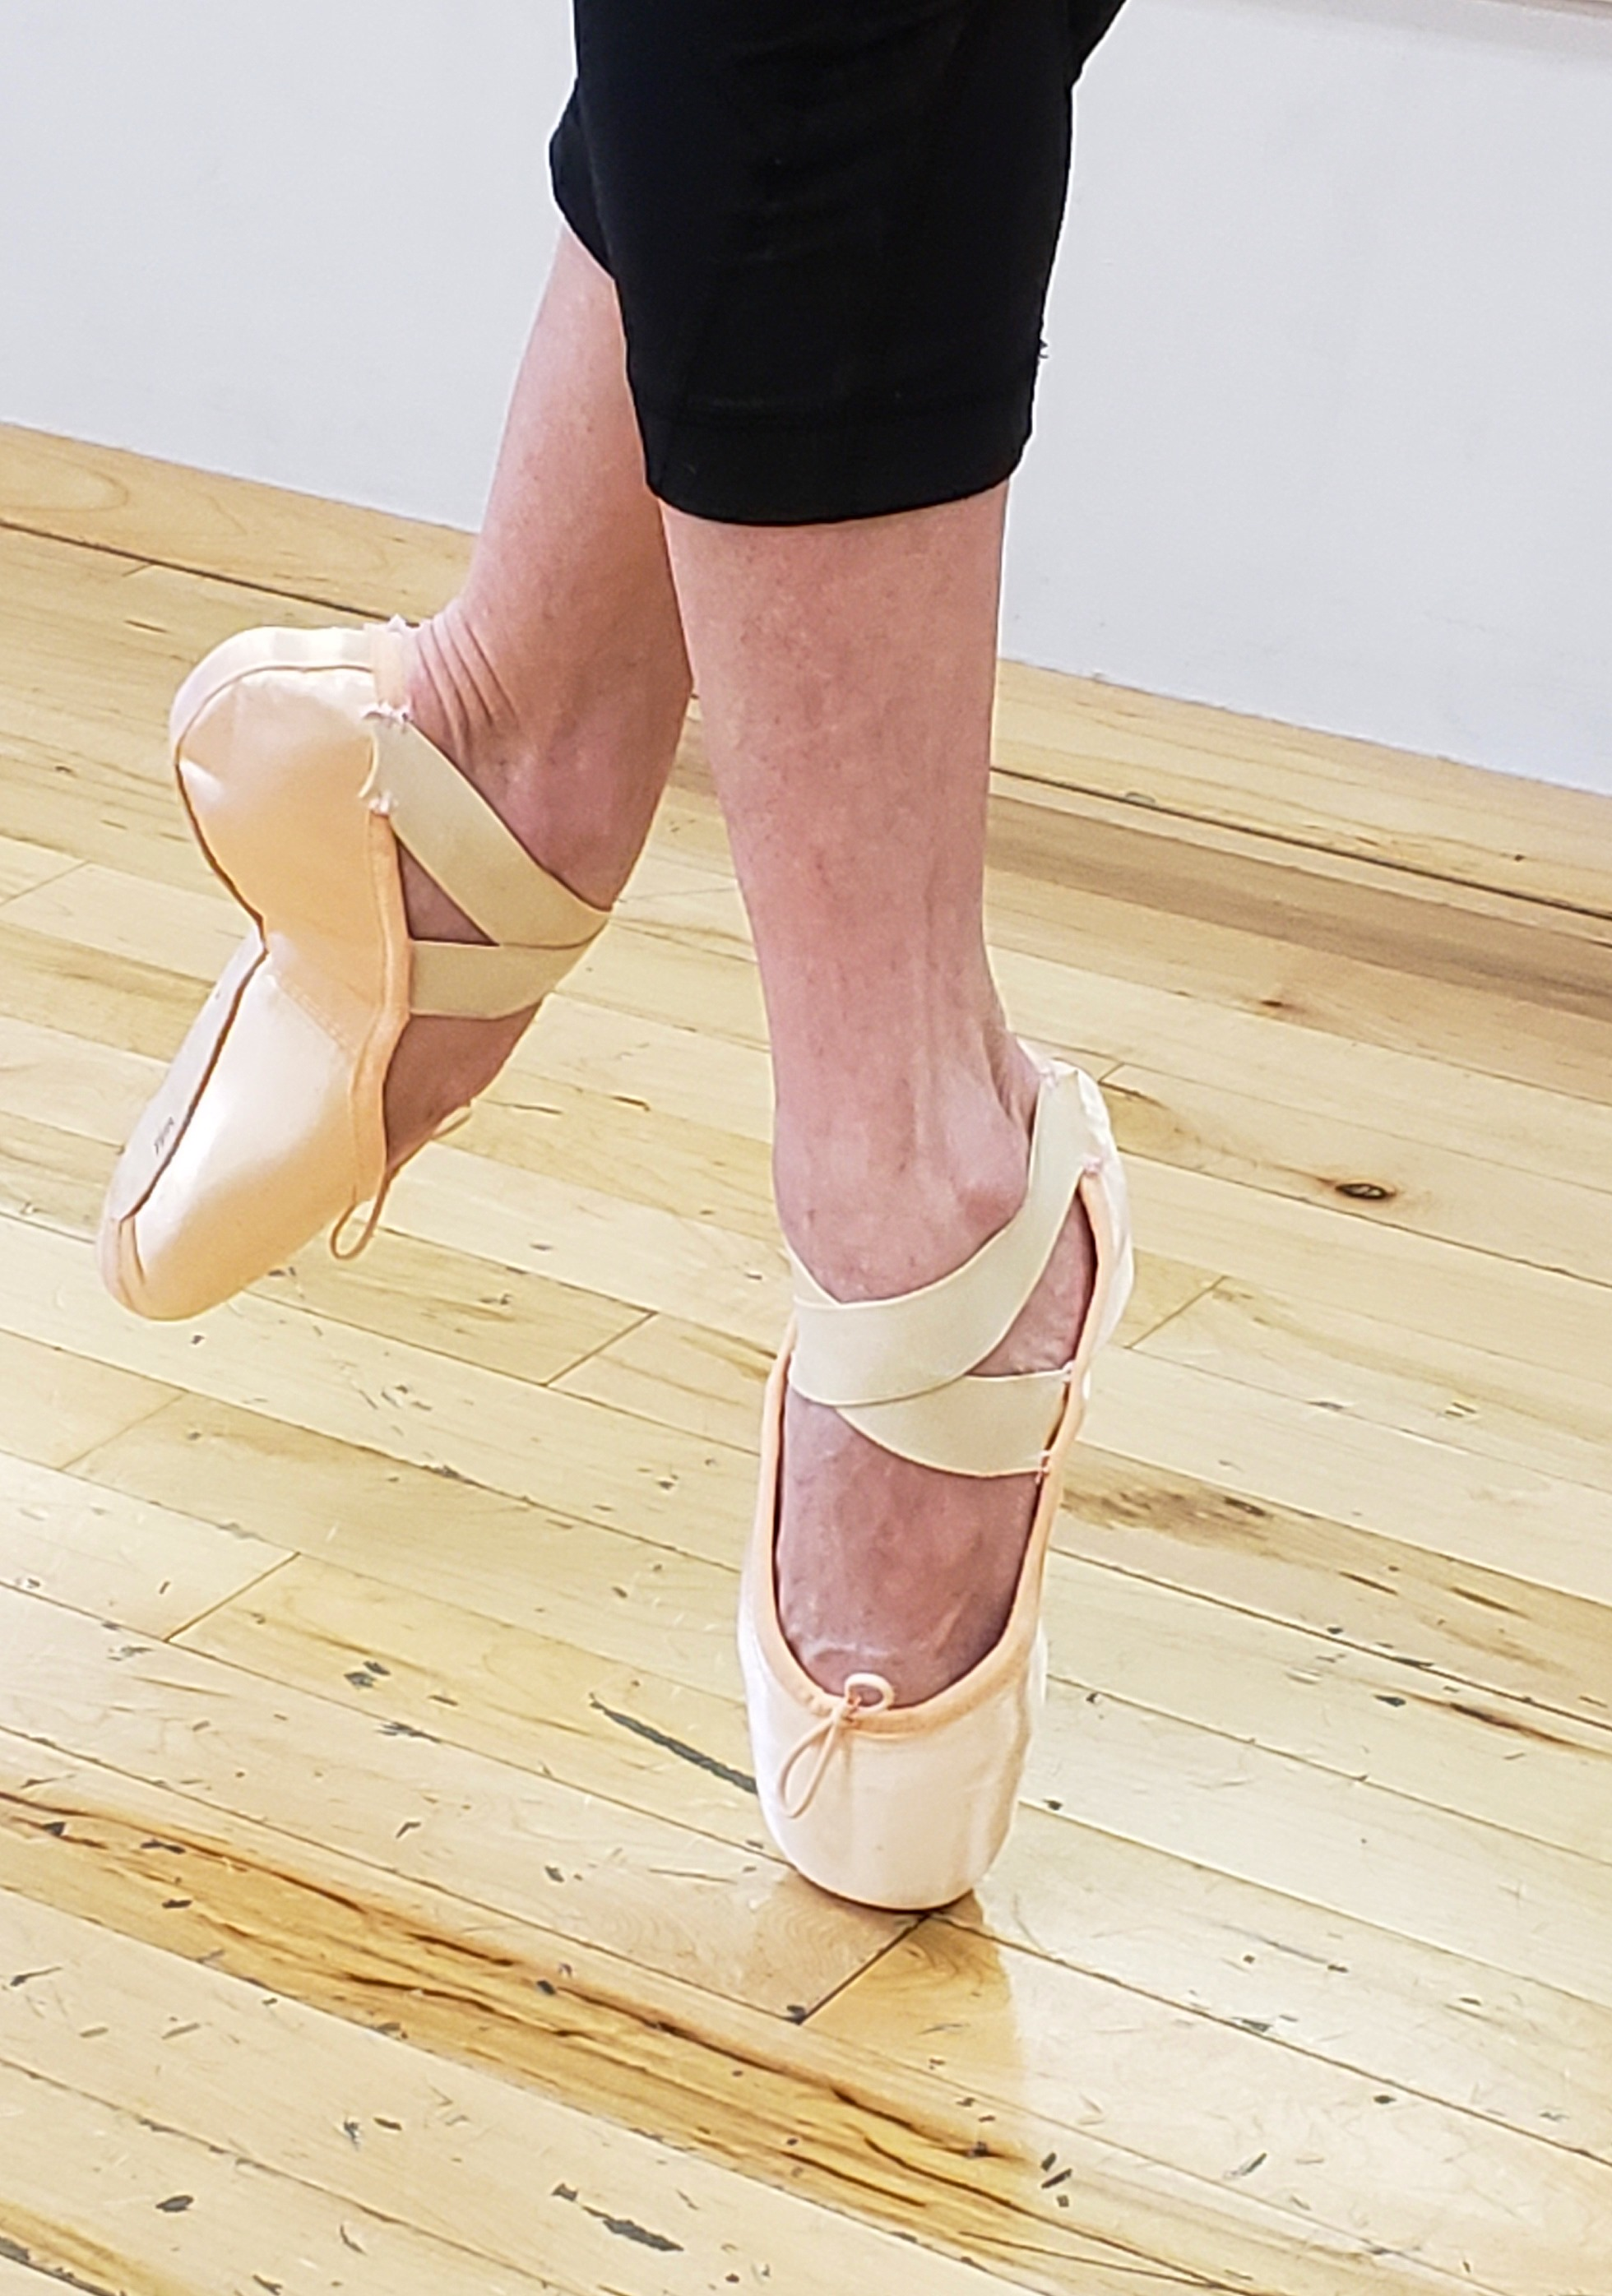 Sara Webb Bardo - though recently retired after 21 years at the Houston Ballet now teaches ballet to a new generation.